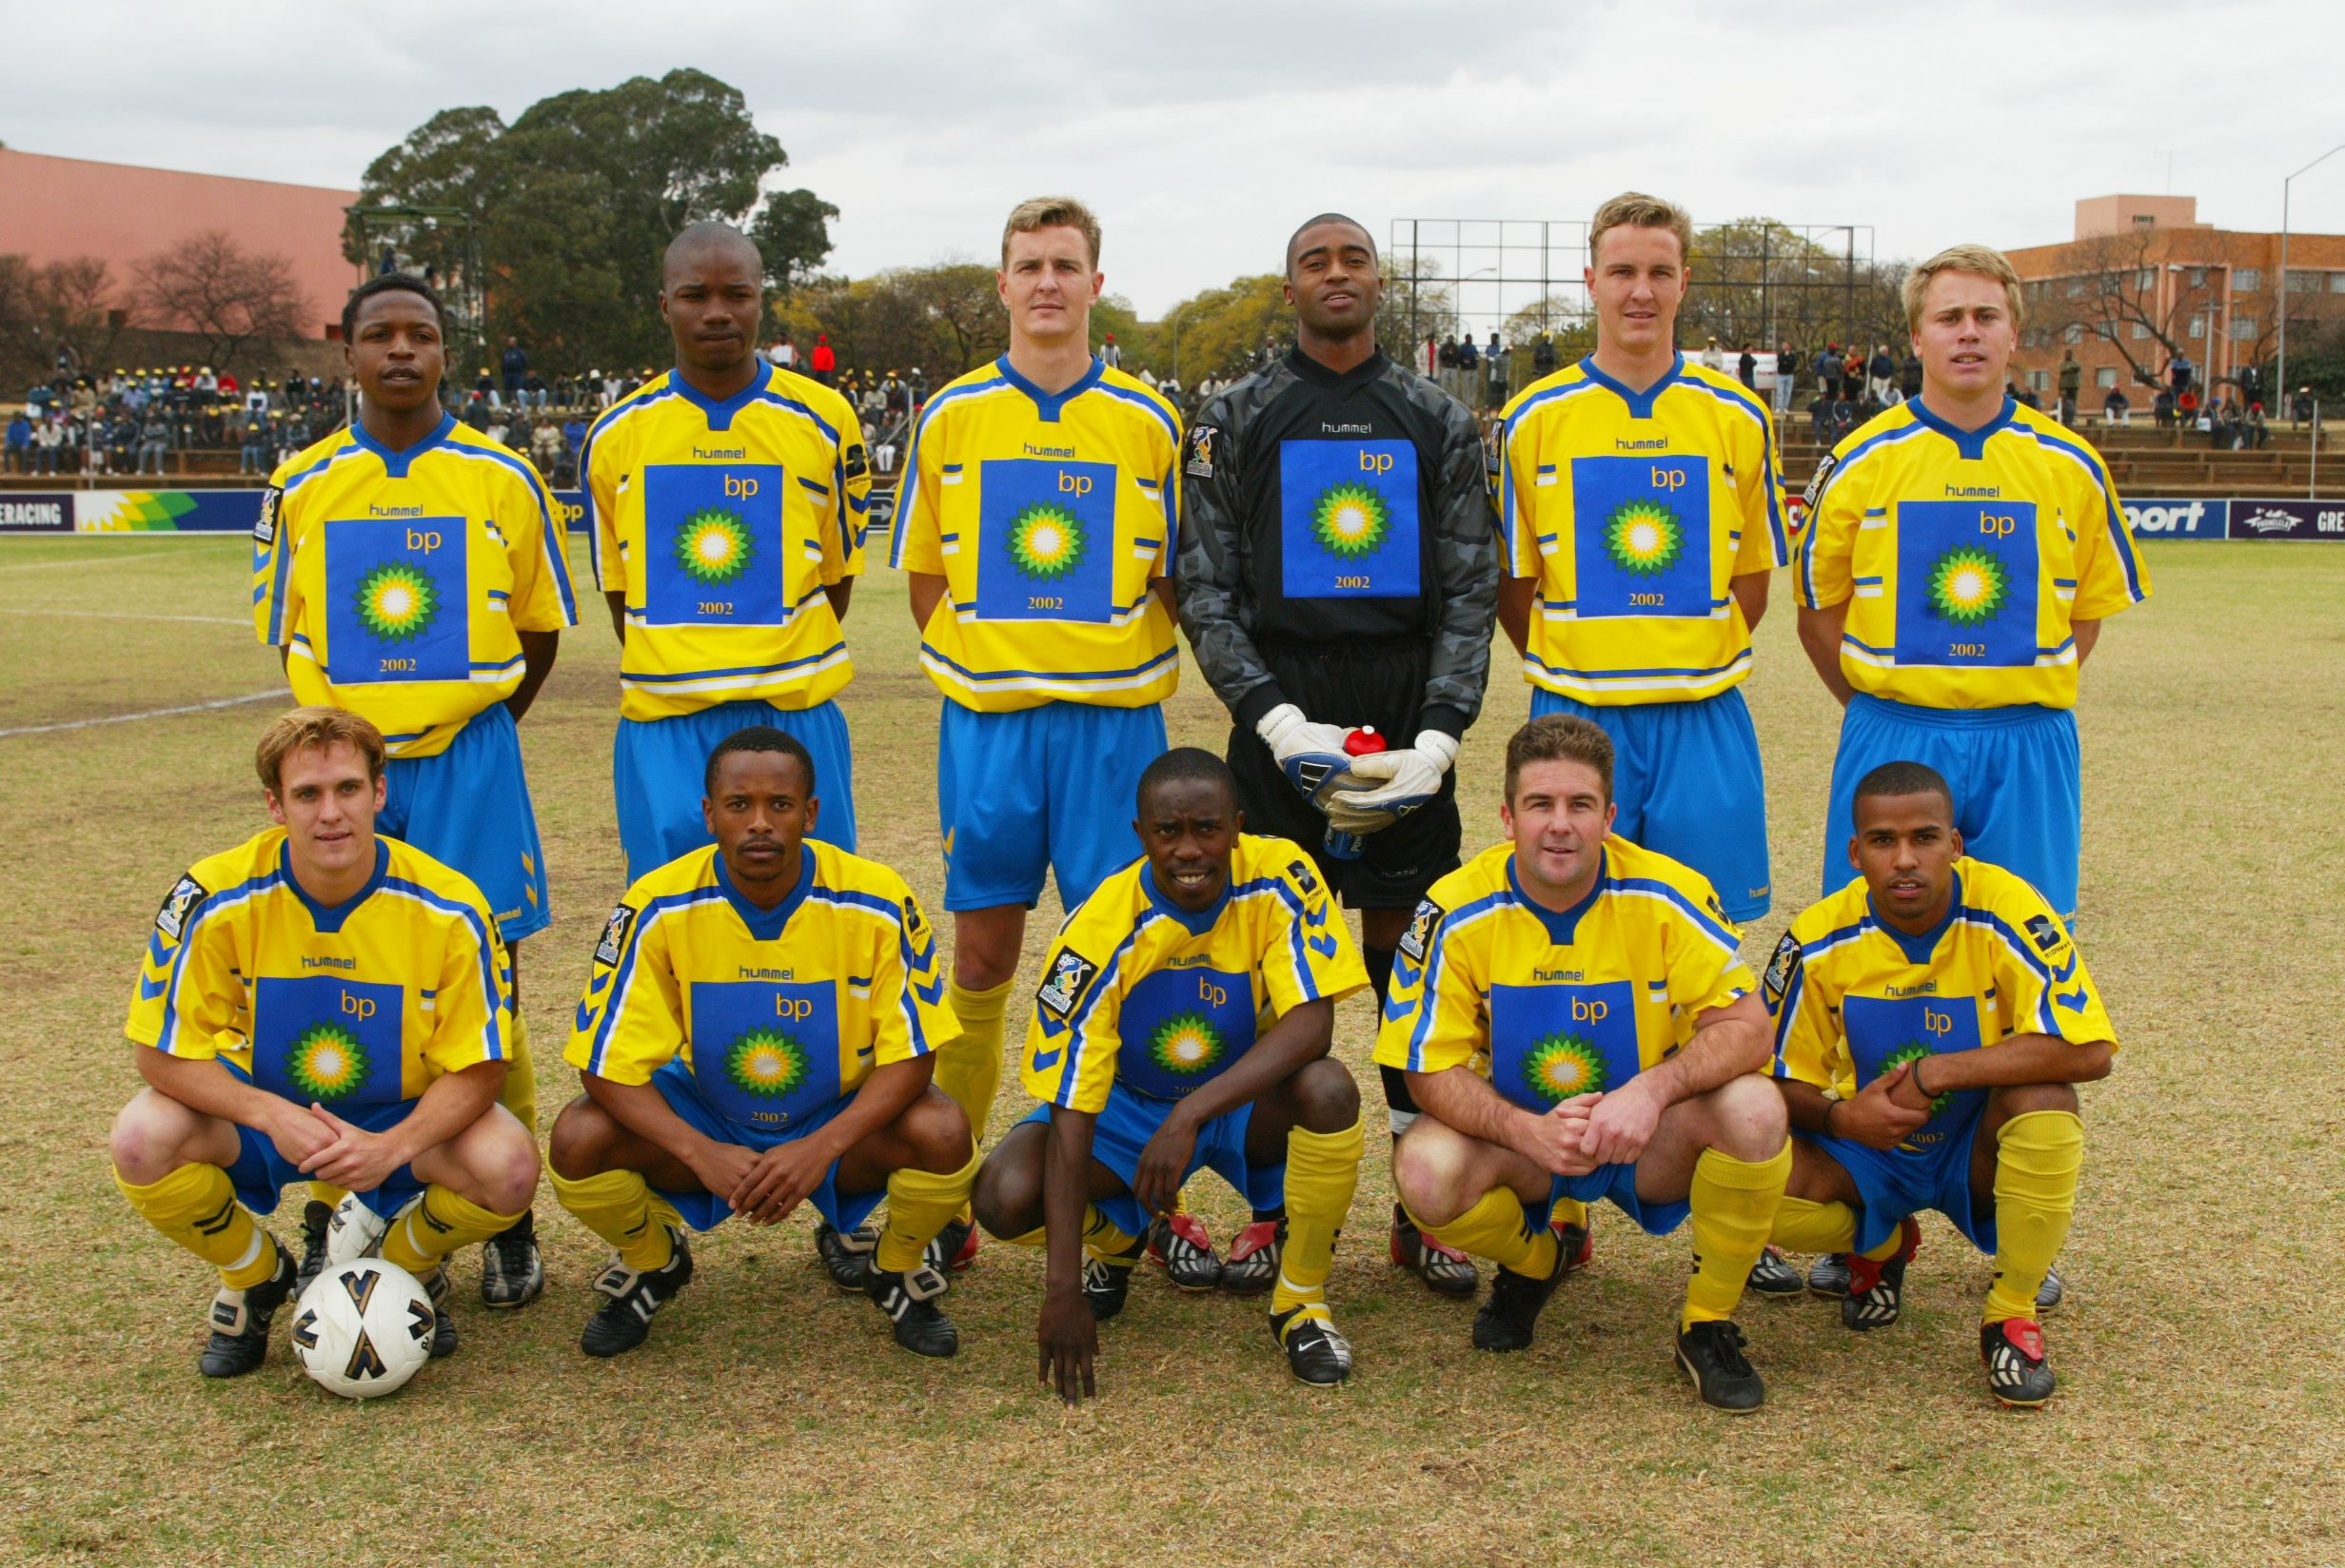 17 August 2002: Back, from left, Wits University players Charles Yohane, Kagiso Denge, Ivan Winstanley, Wayne Roberts, Neil Winstanley and Gordon Ewen. Front, from left, Ryan Hodgskin, Ashley Makhanya, Gerald Modabi, Roan Maulgue and Leonard Casner. (Photograph © Gallo Images)